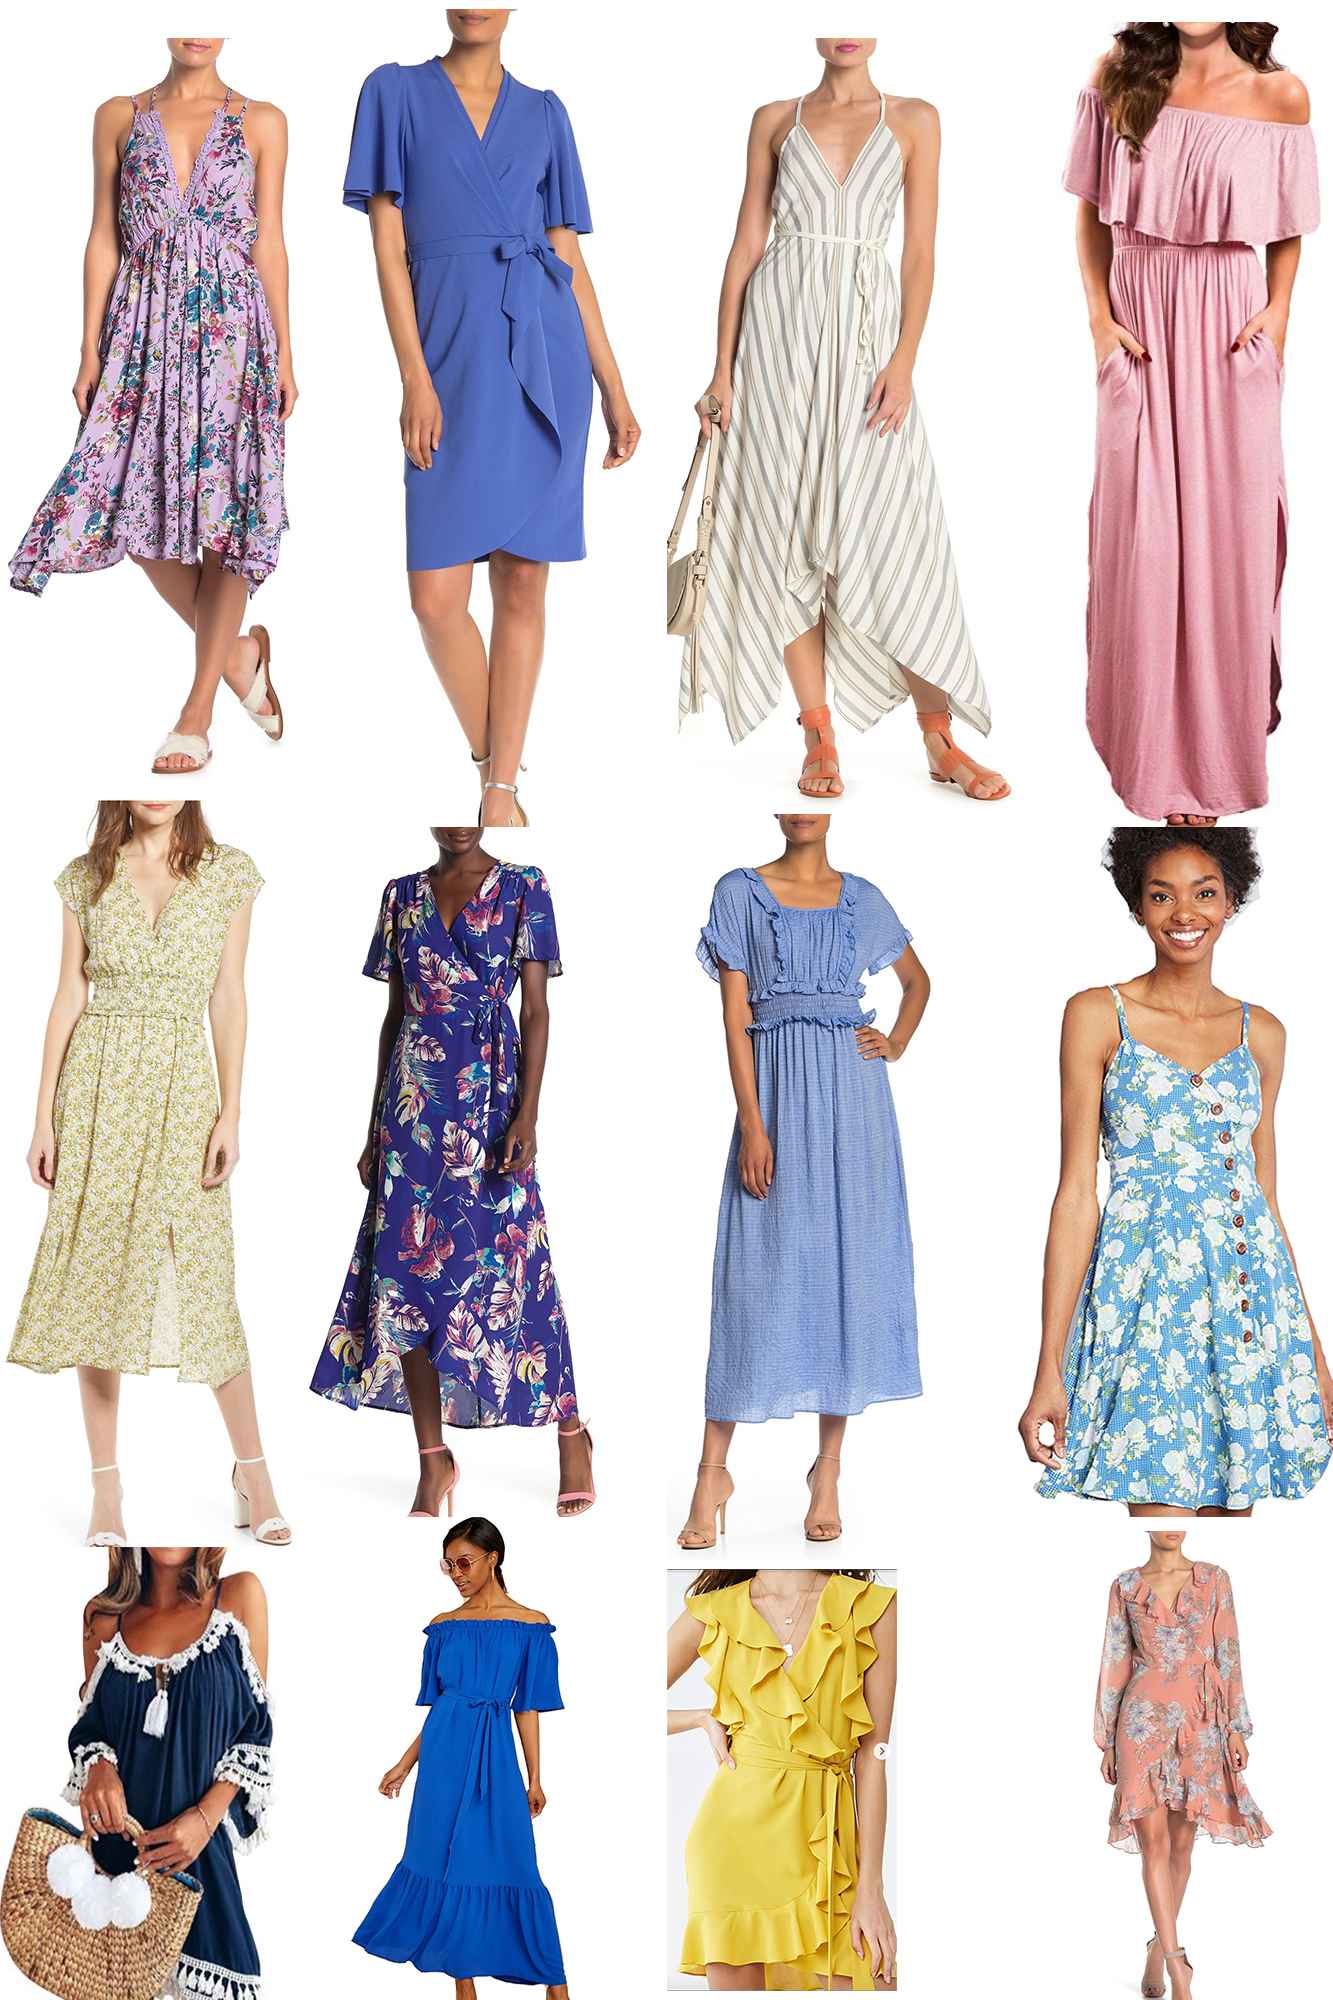 Cutest Summer Dresses under $50 - Loving these adorable steals for an affordable price. Perfect for the rest of Summer!